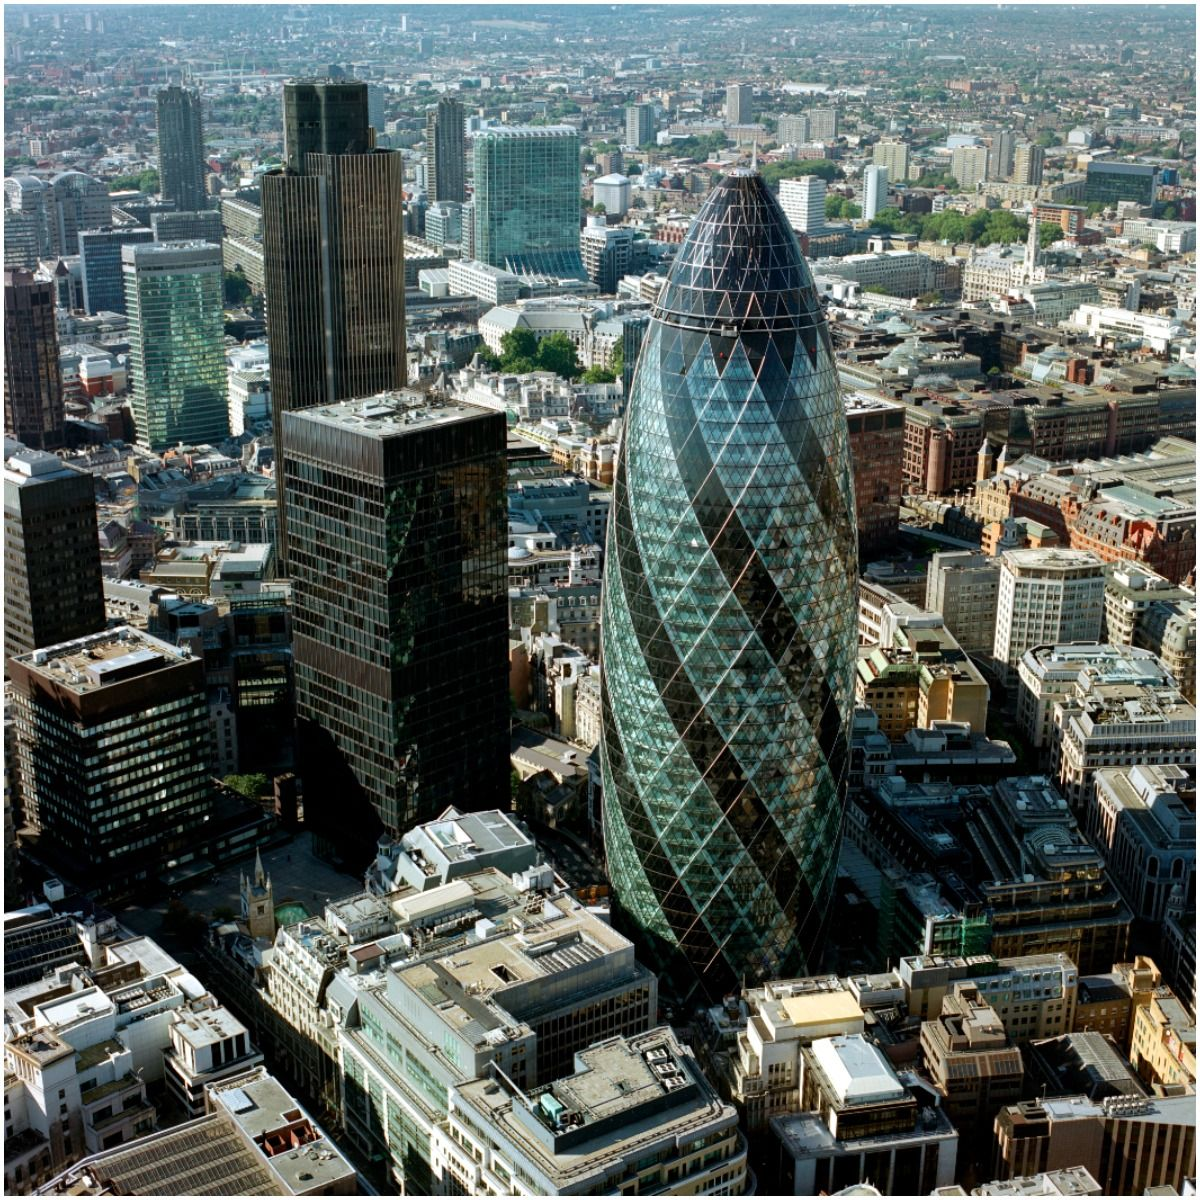 The Gherkin, designed by Norman Foster